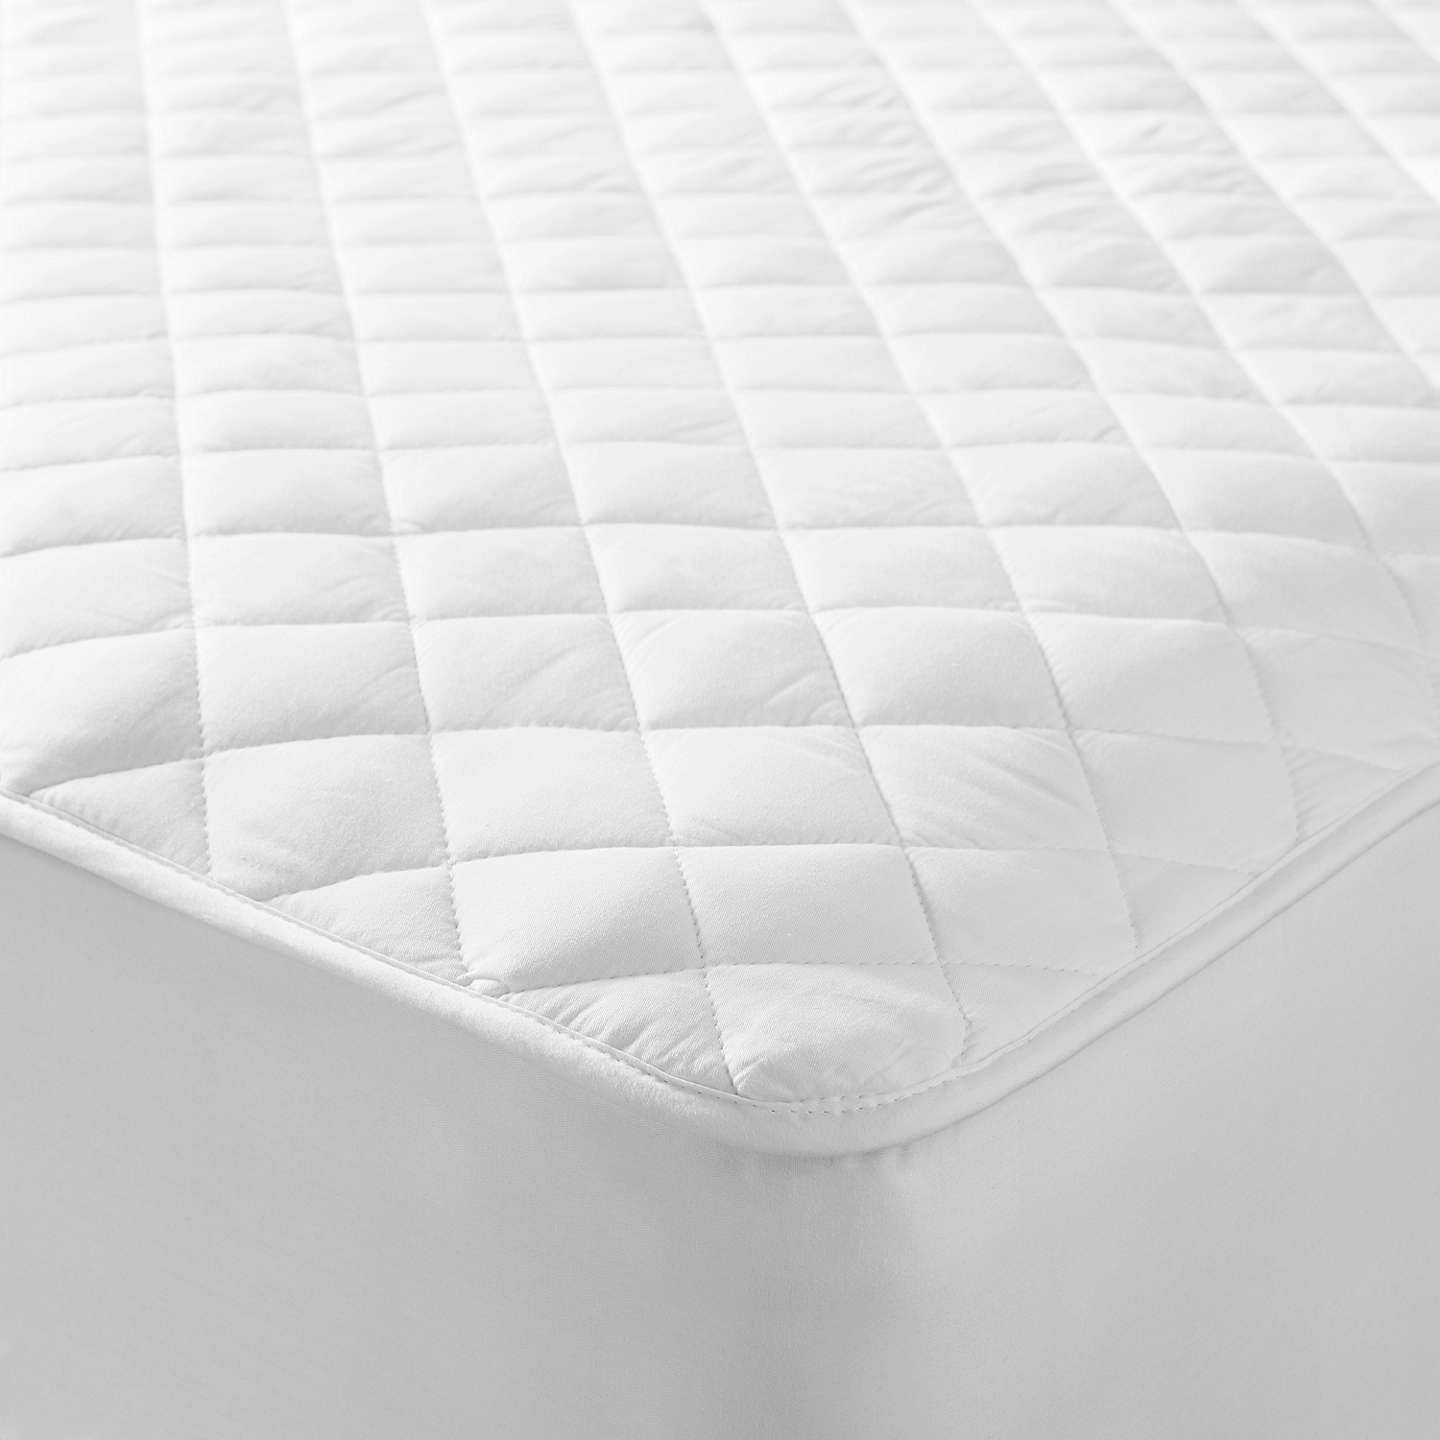 quilted mattress pad. Modren Quilted BuyJohn Lewis Natural Cotton Quilted Mattress Protector Single Online At  Johnlewiscom  And Pad E